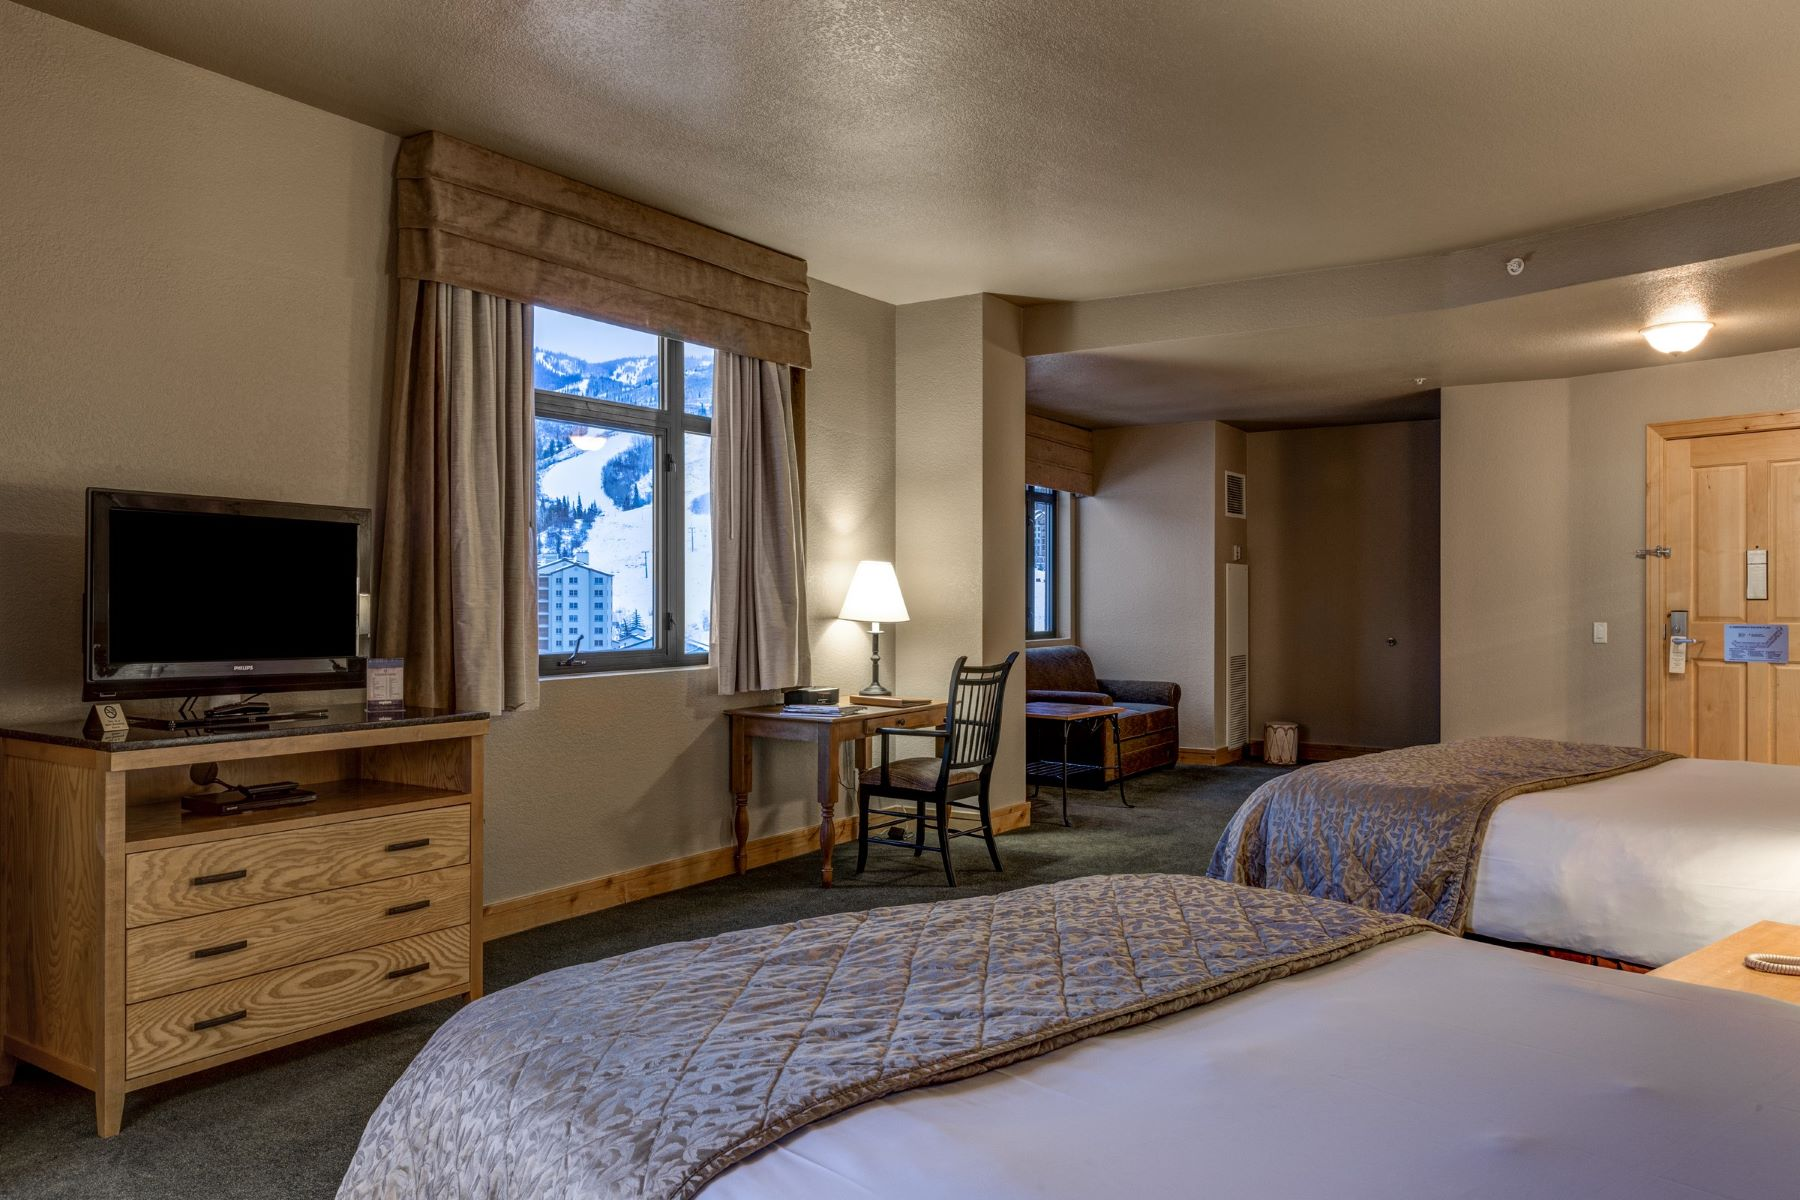 Additional photo for property listing at The Steamboat Grand Resort 2300 Mt Werner Circle 503/504 QIB Steamboat Springs, Colorado 80487 États-Unis